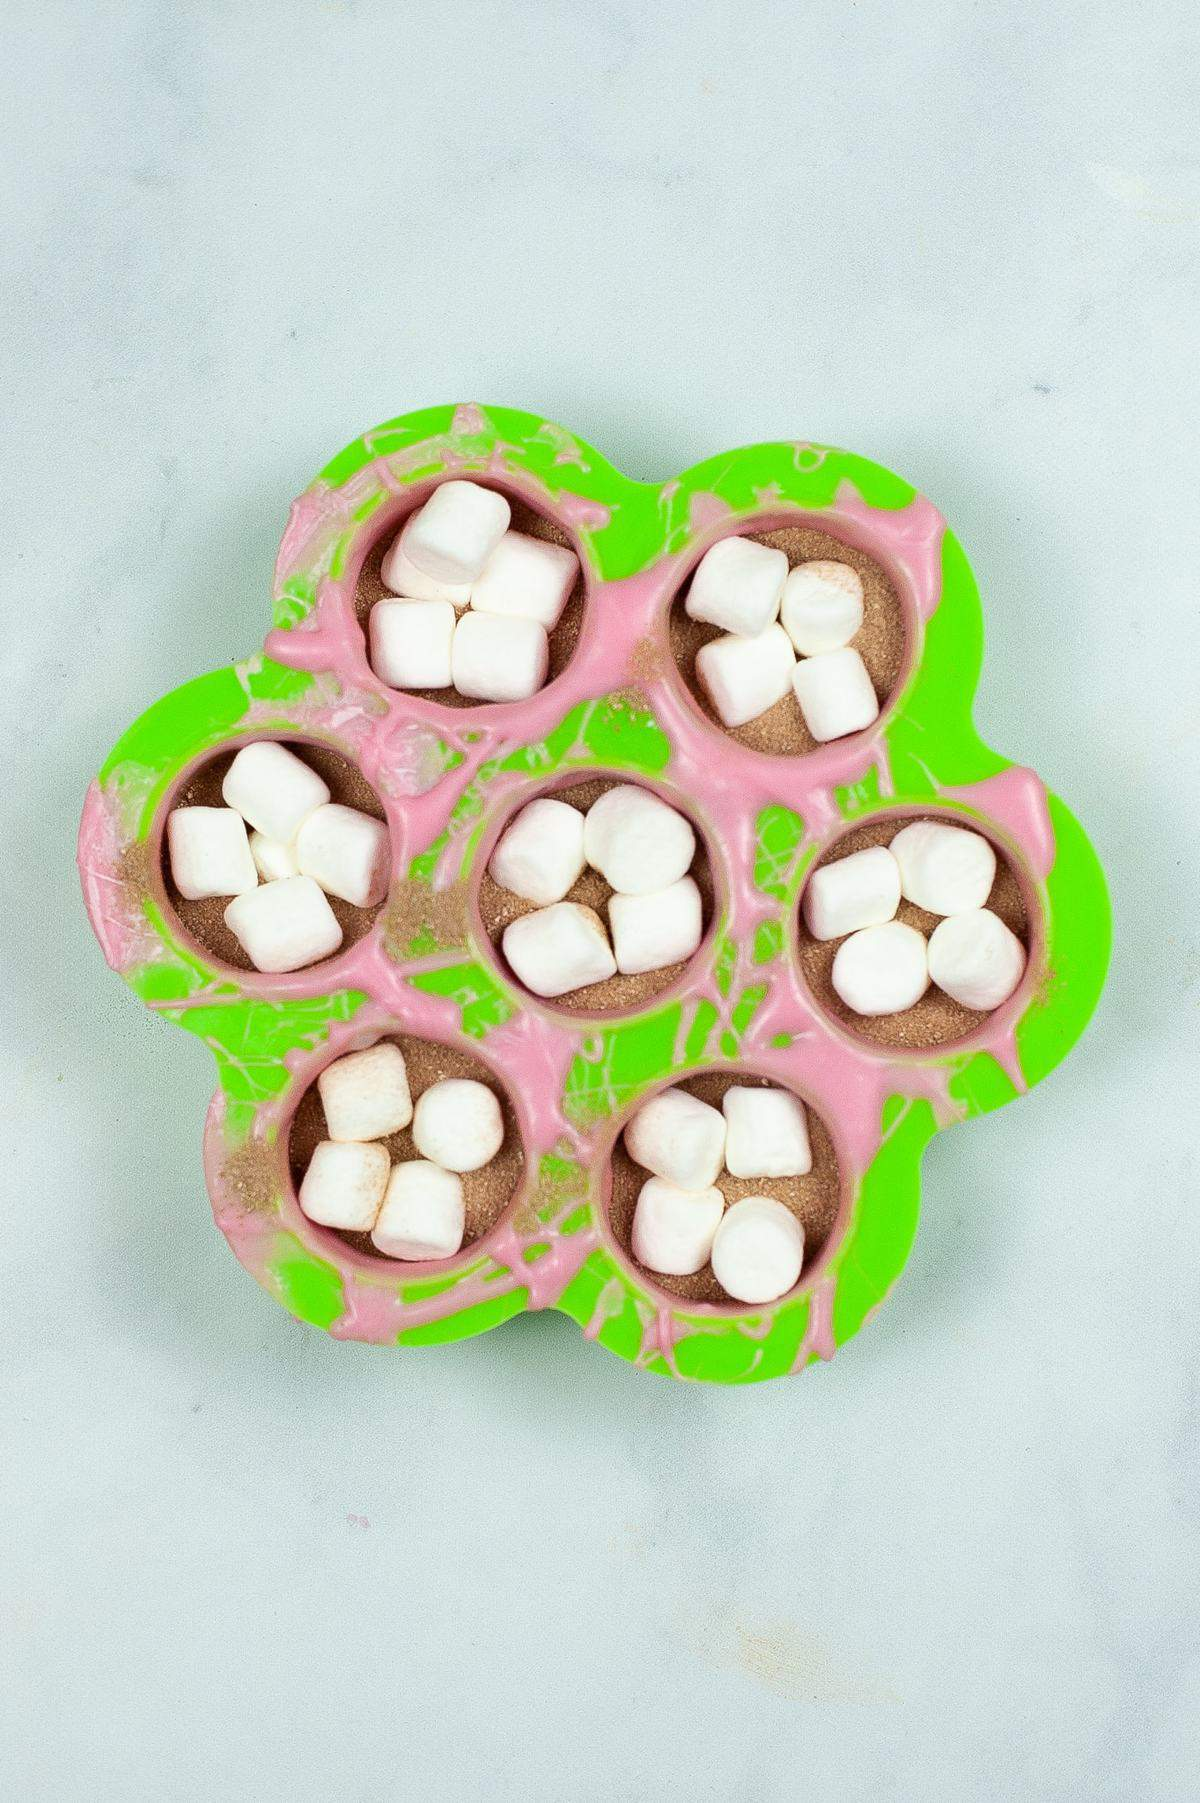 marshmallows on chocolate bomb mold